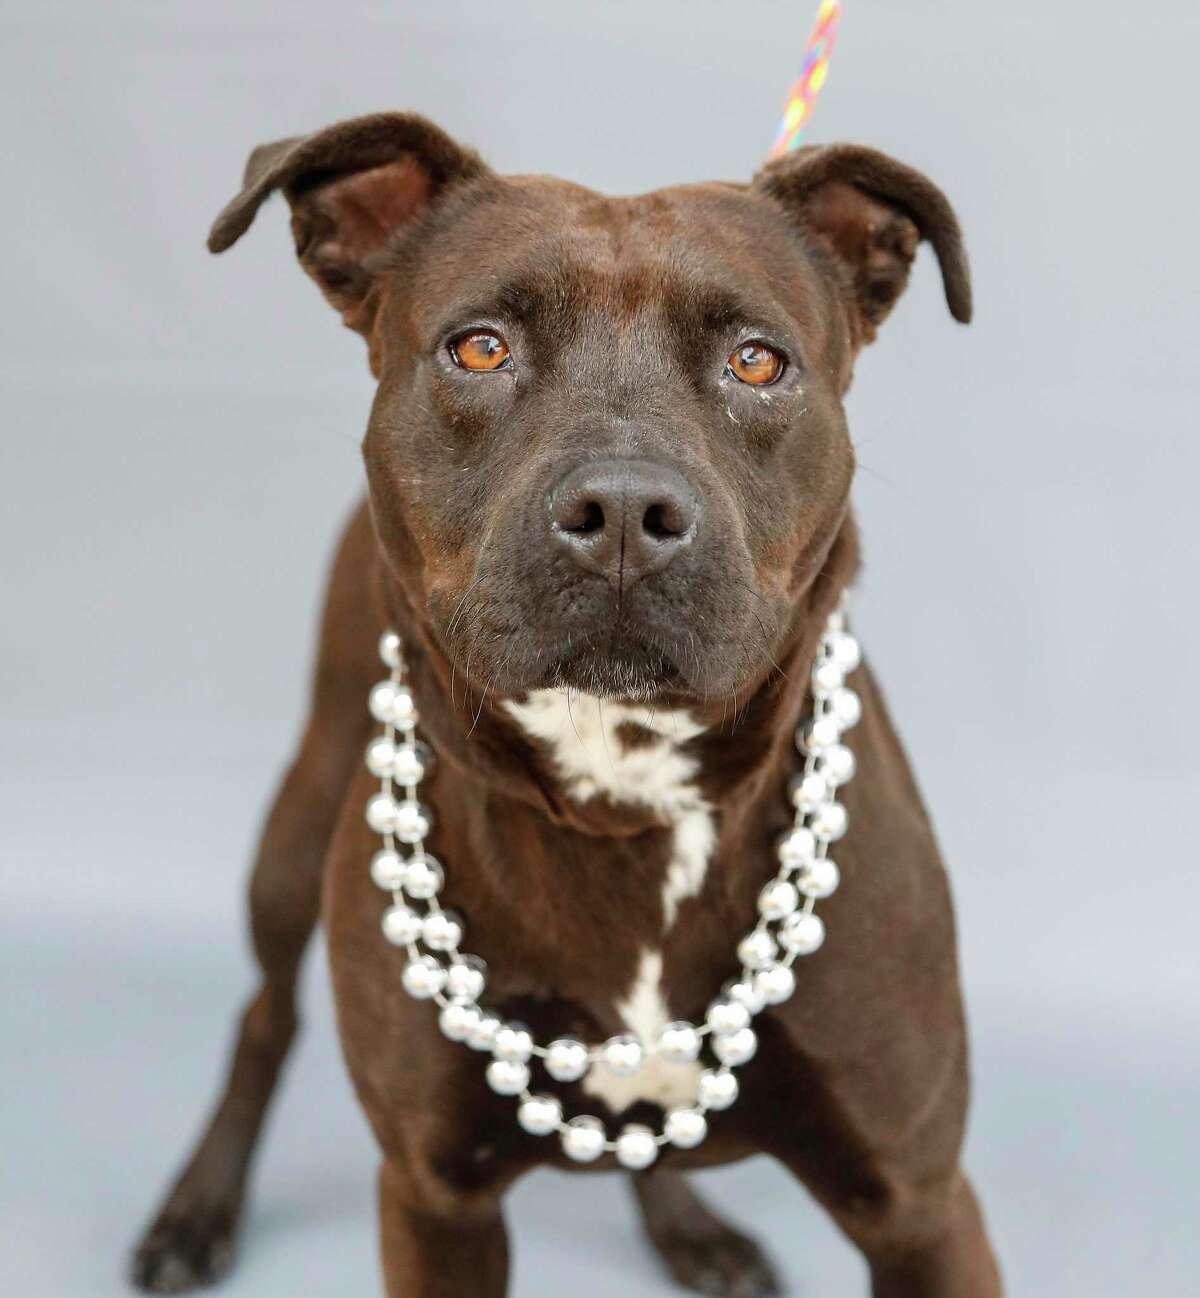 Plum (A568341) is a 1-year-old, female Labrador retriever mix available for adoption from Harris County Pets. Plum was adopted and returned because she chased the new owner's cat. Plum gets along with other dogs, men and women. Plum's adoption fees have been waived by the shelter.